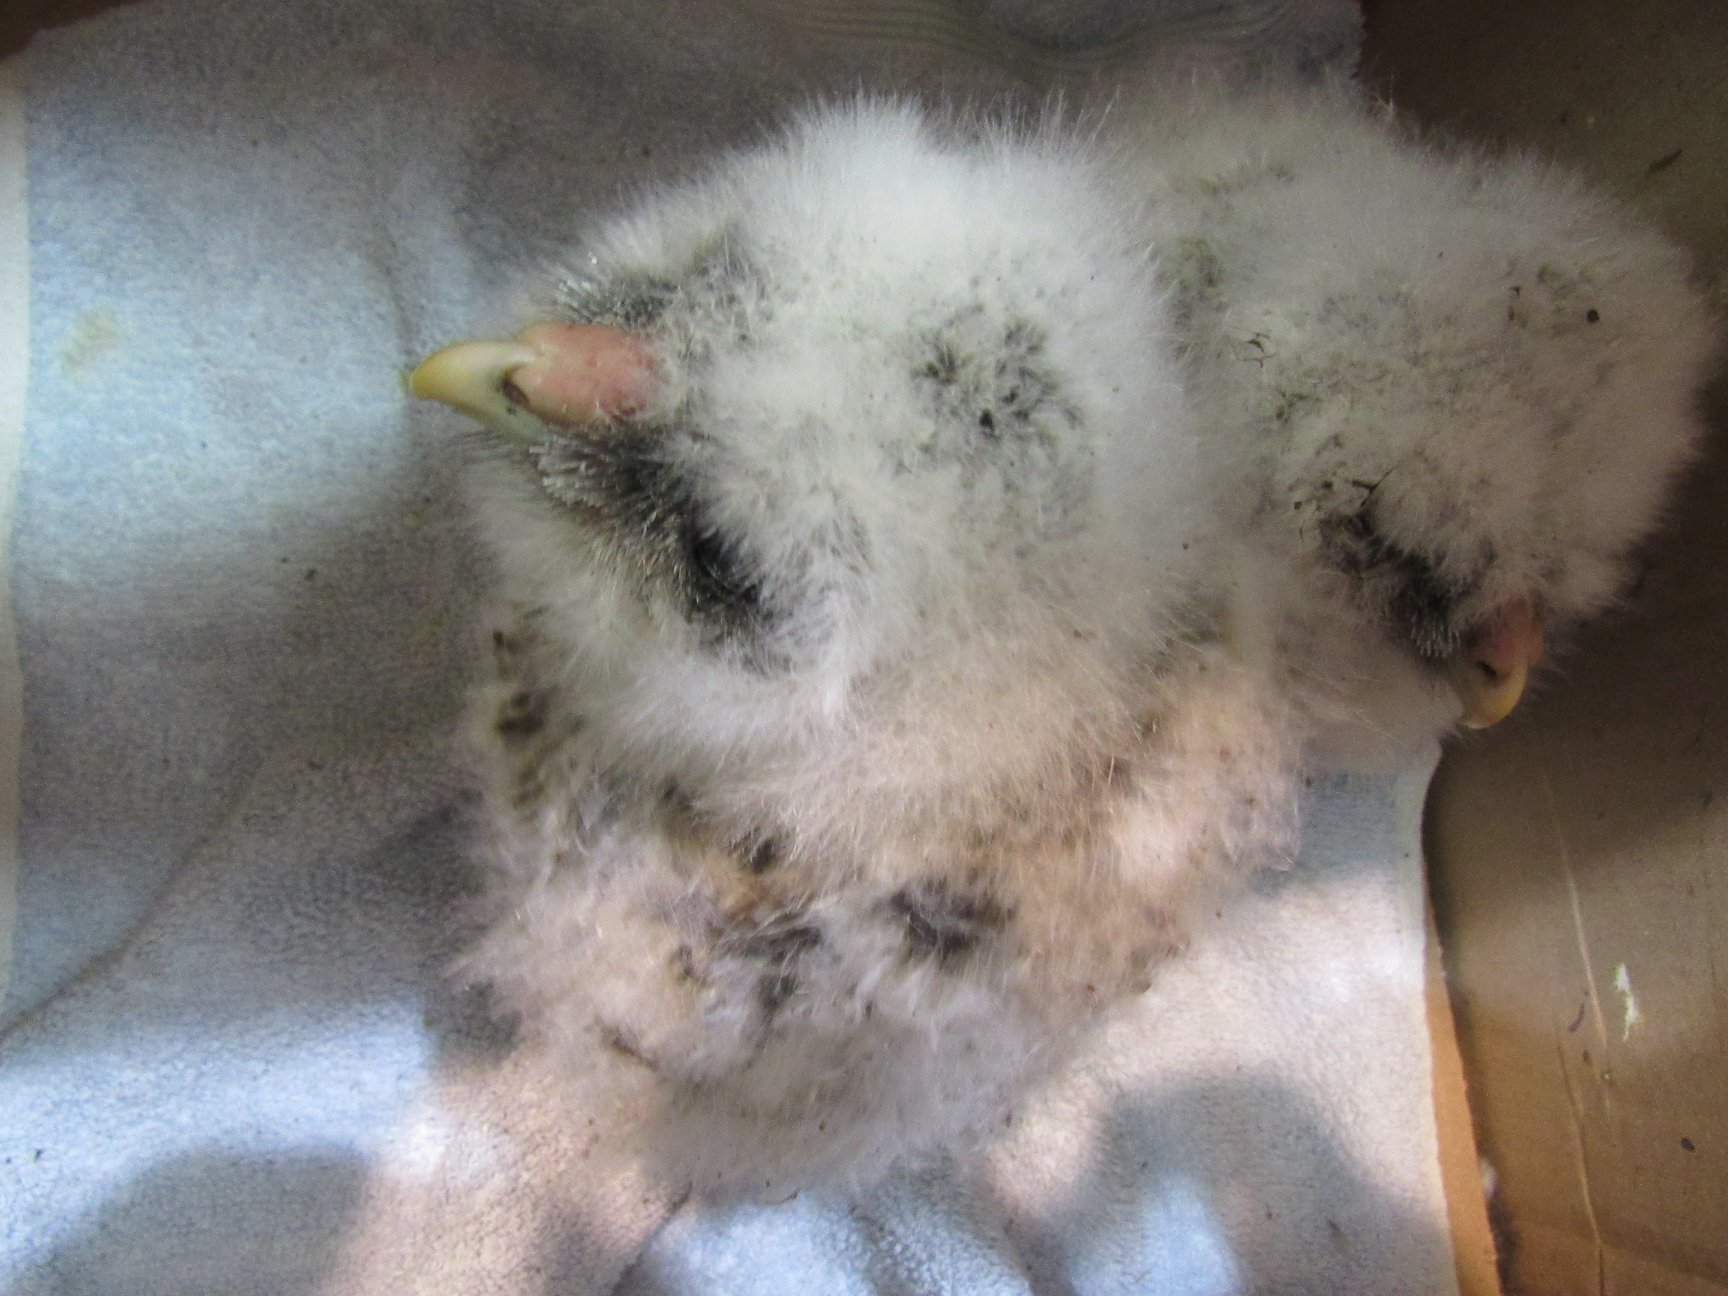 Two Barred Owlets survived the incident when their nest tree was cut down.